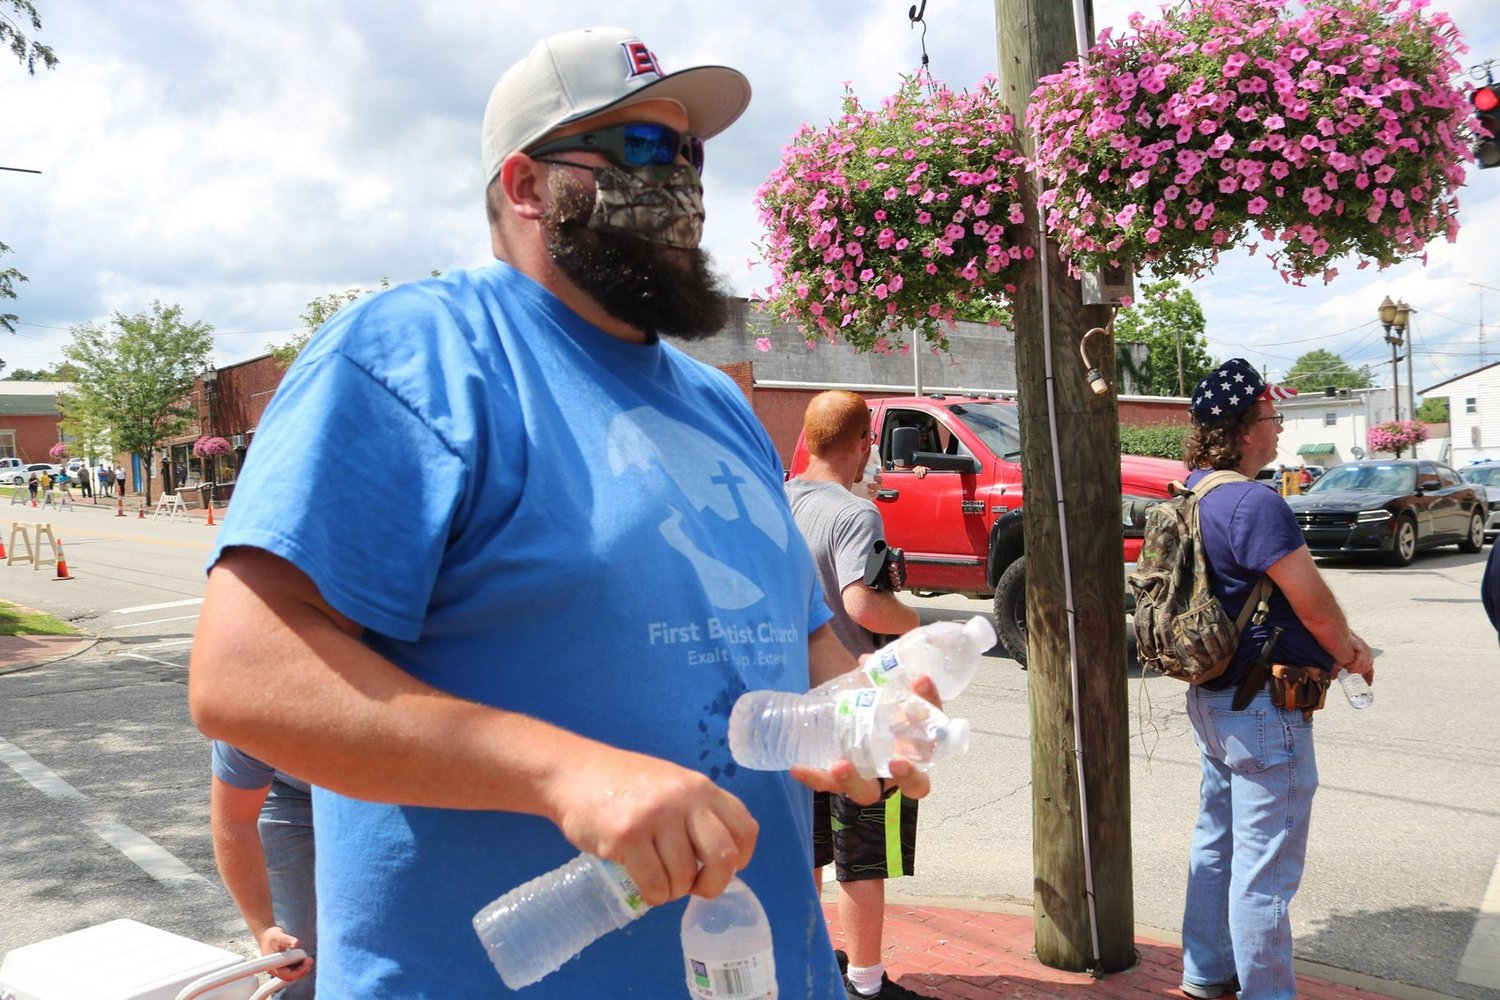 Cory Jones, the youth pastor at First Baptist Church in Grayson, hands out some cold water during a Black Lives Matter protest march in the small Kentucky town. (Tim Preston/Carter County Post)